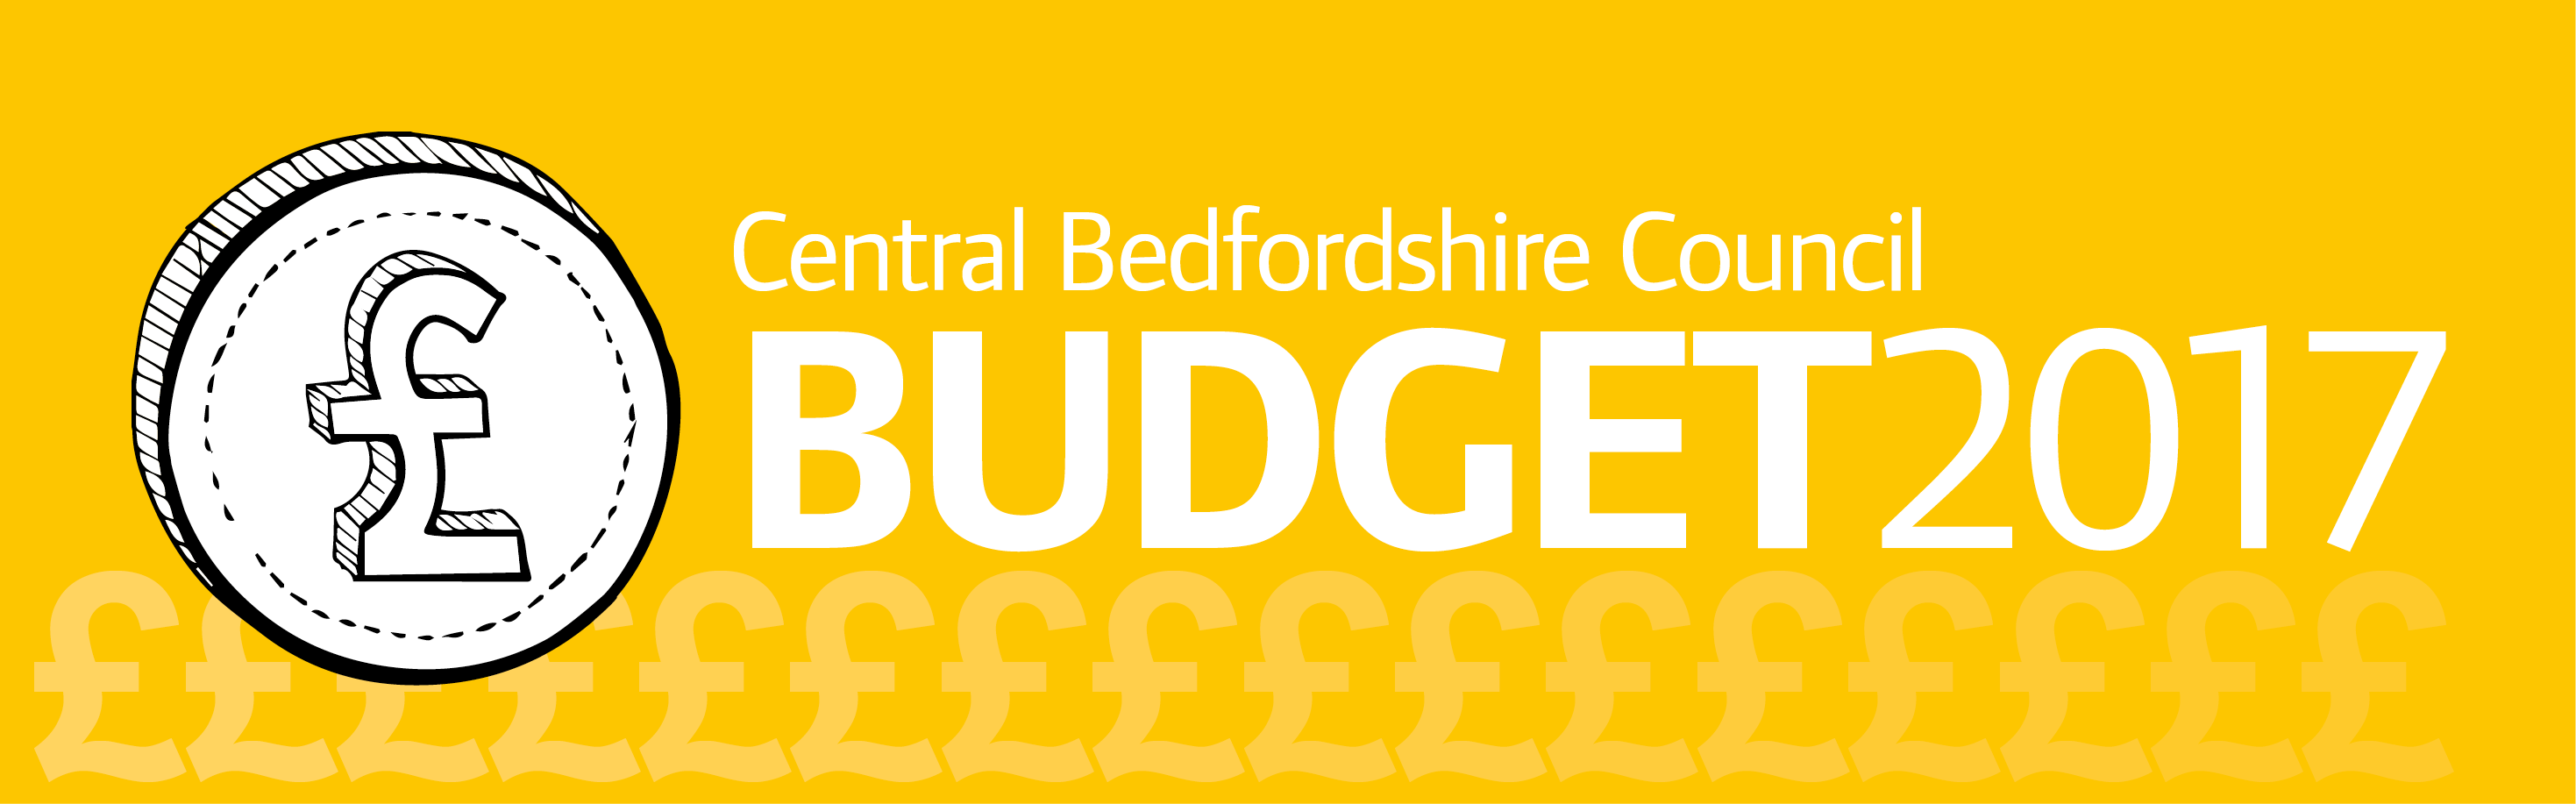 Budget 2017 - Have your say on how Central Bedfordshire Council spends your money